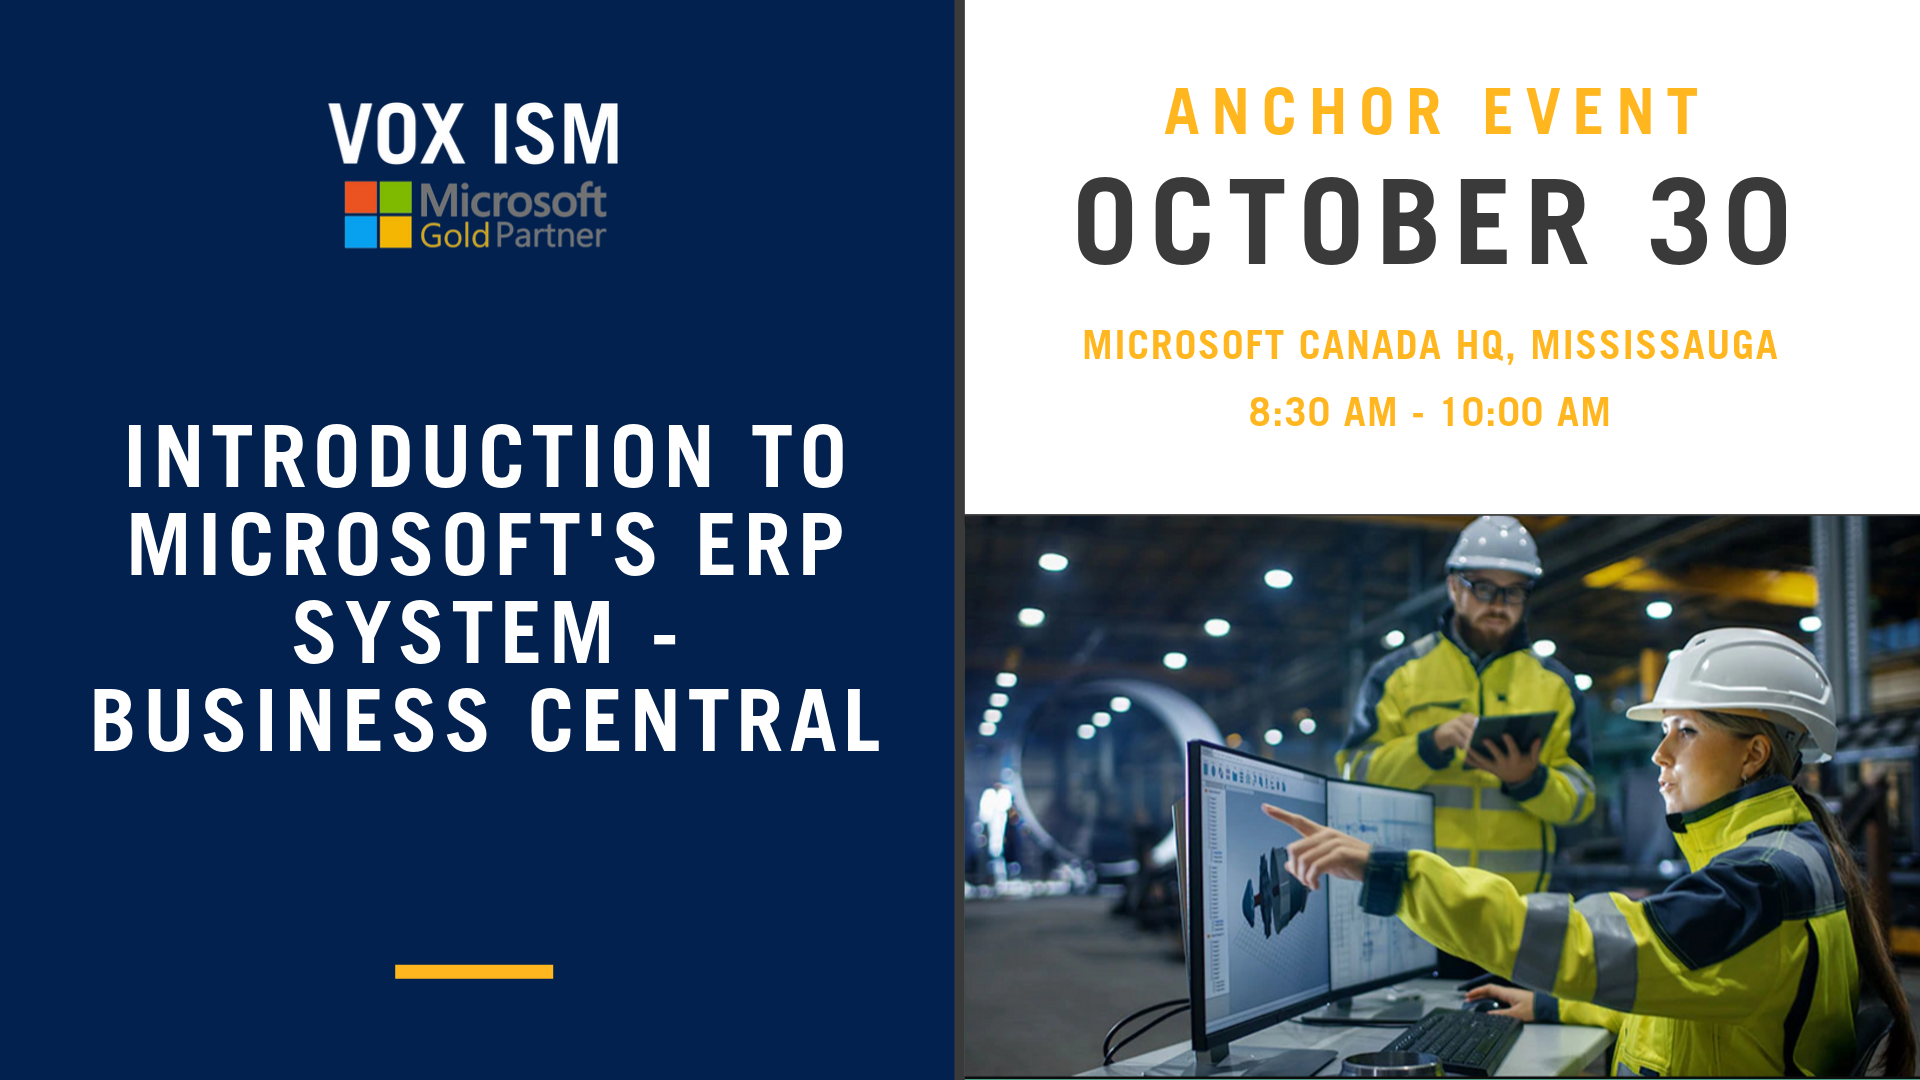 Introduction to Microsoft's ERP System - Business Central